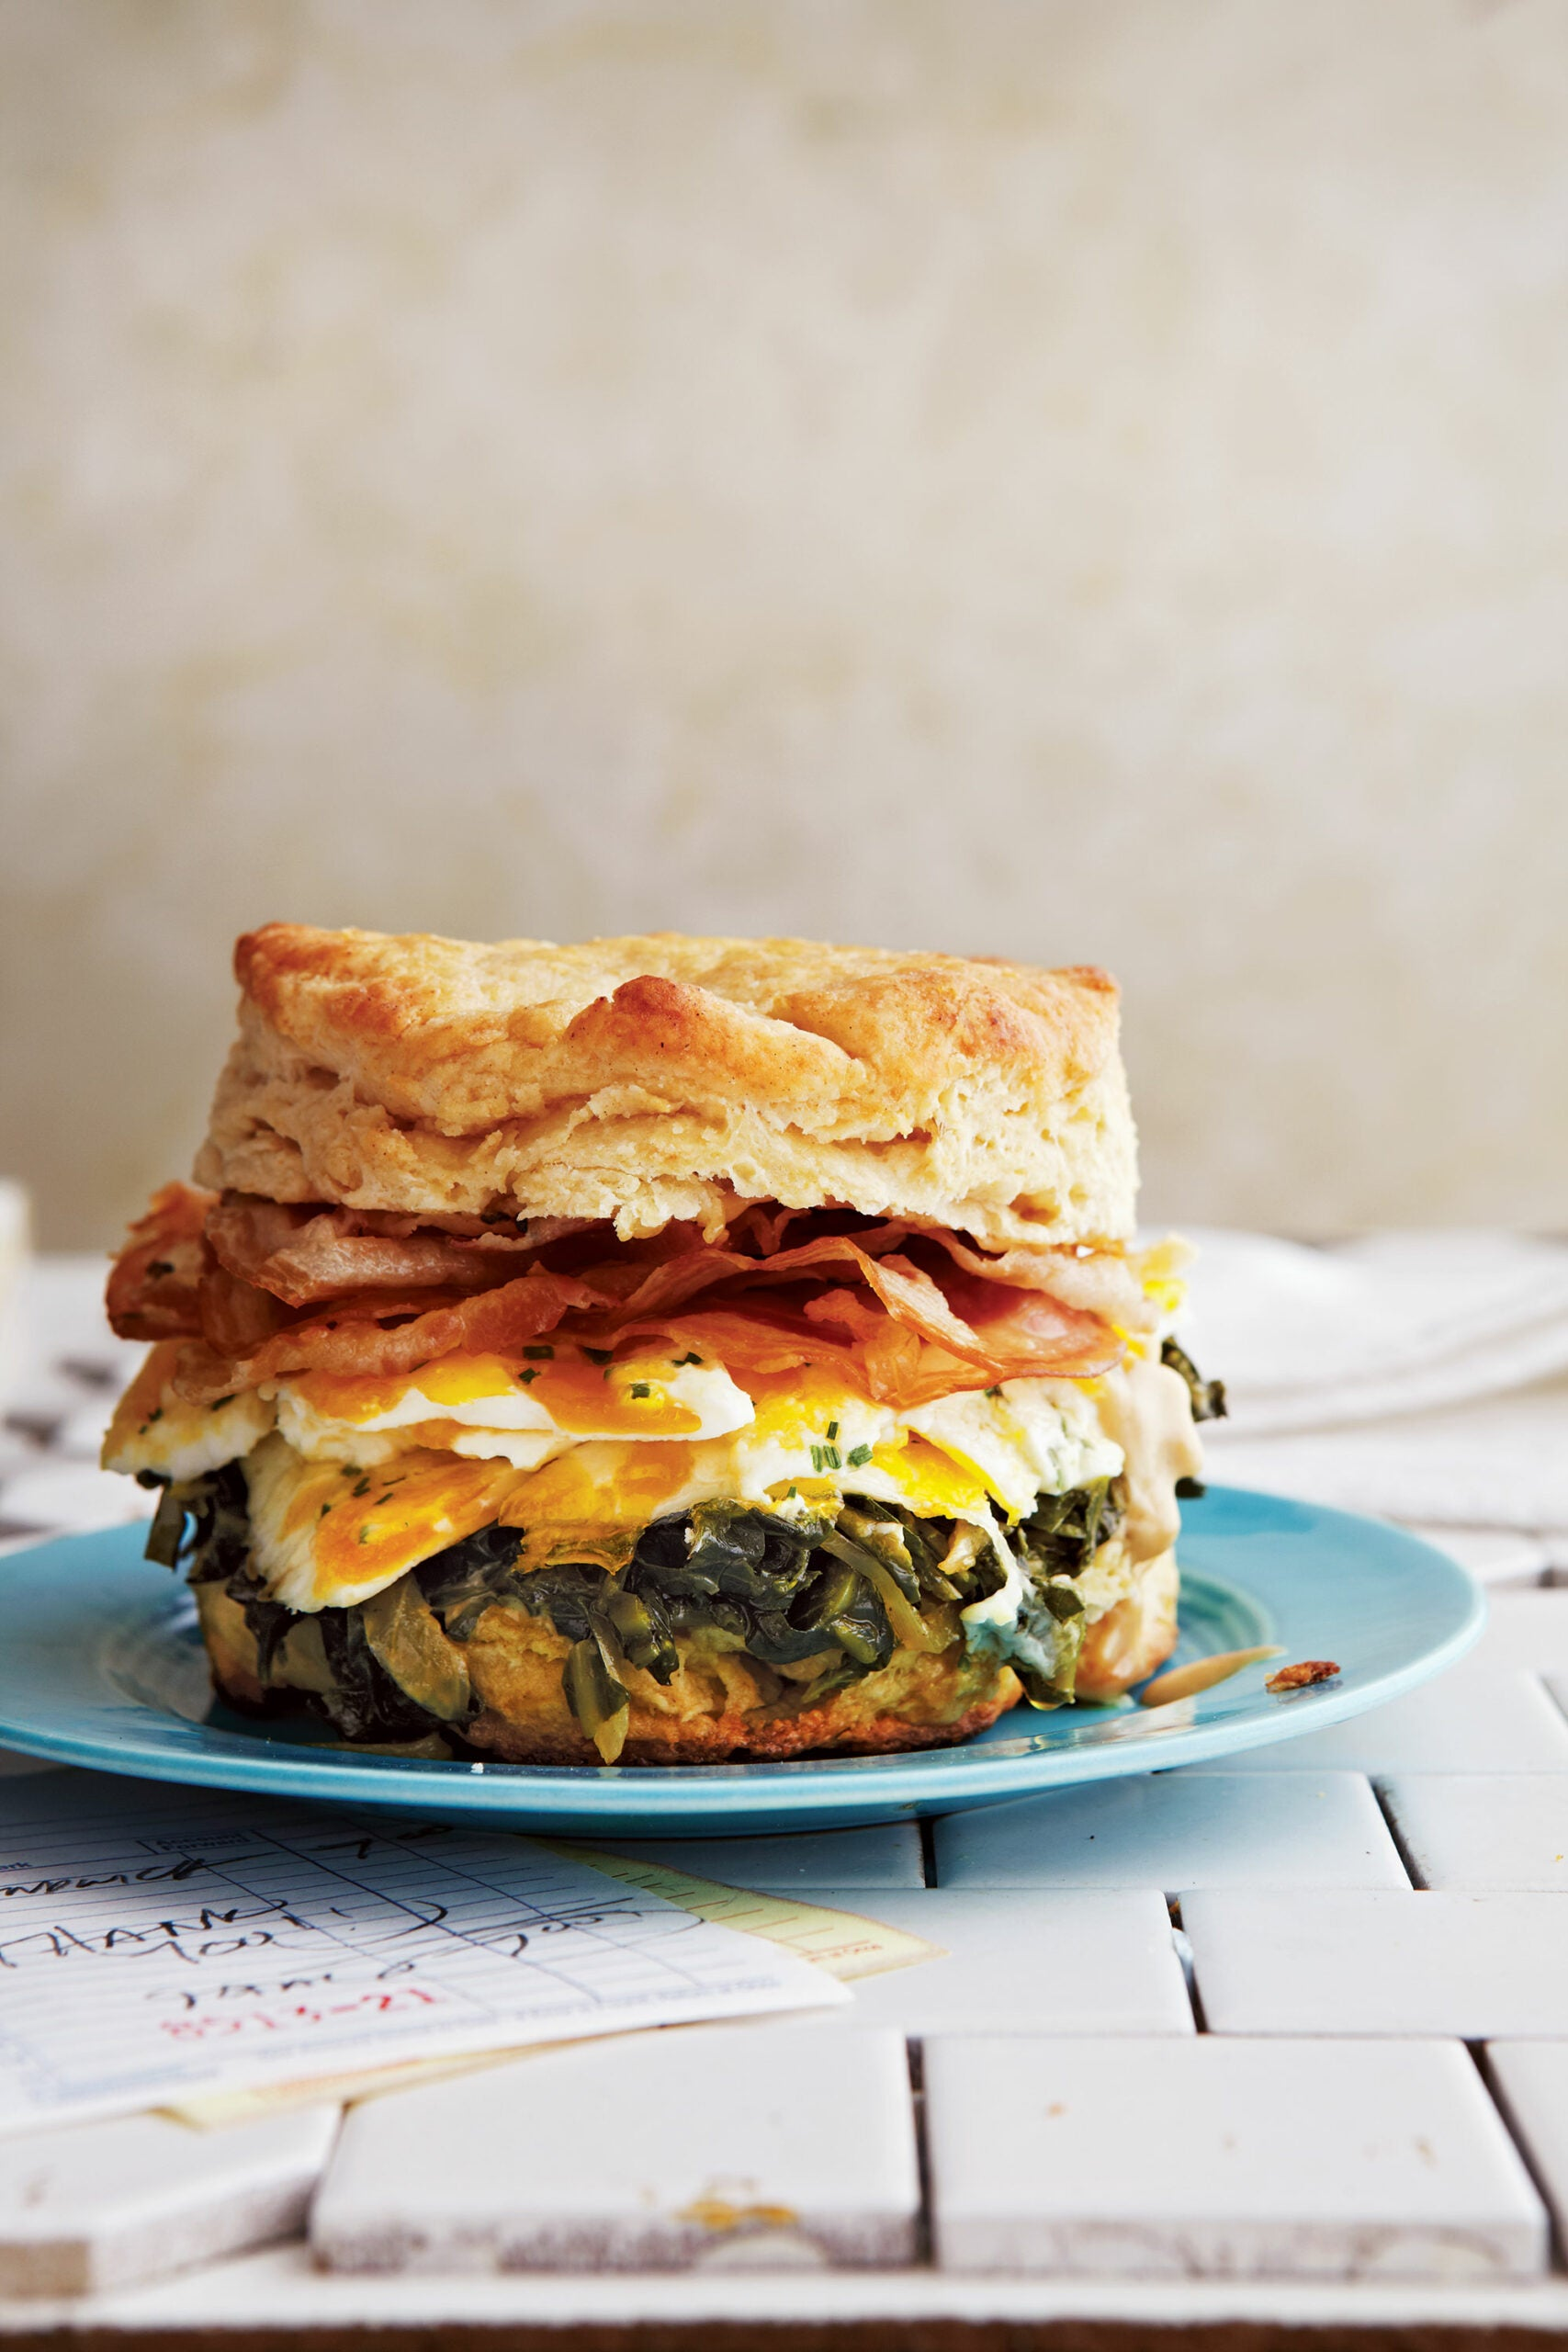 Biscuits with Pancetta, Collard Greens, Marbleized Eggs, and Espresso Aïoli